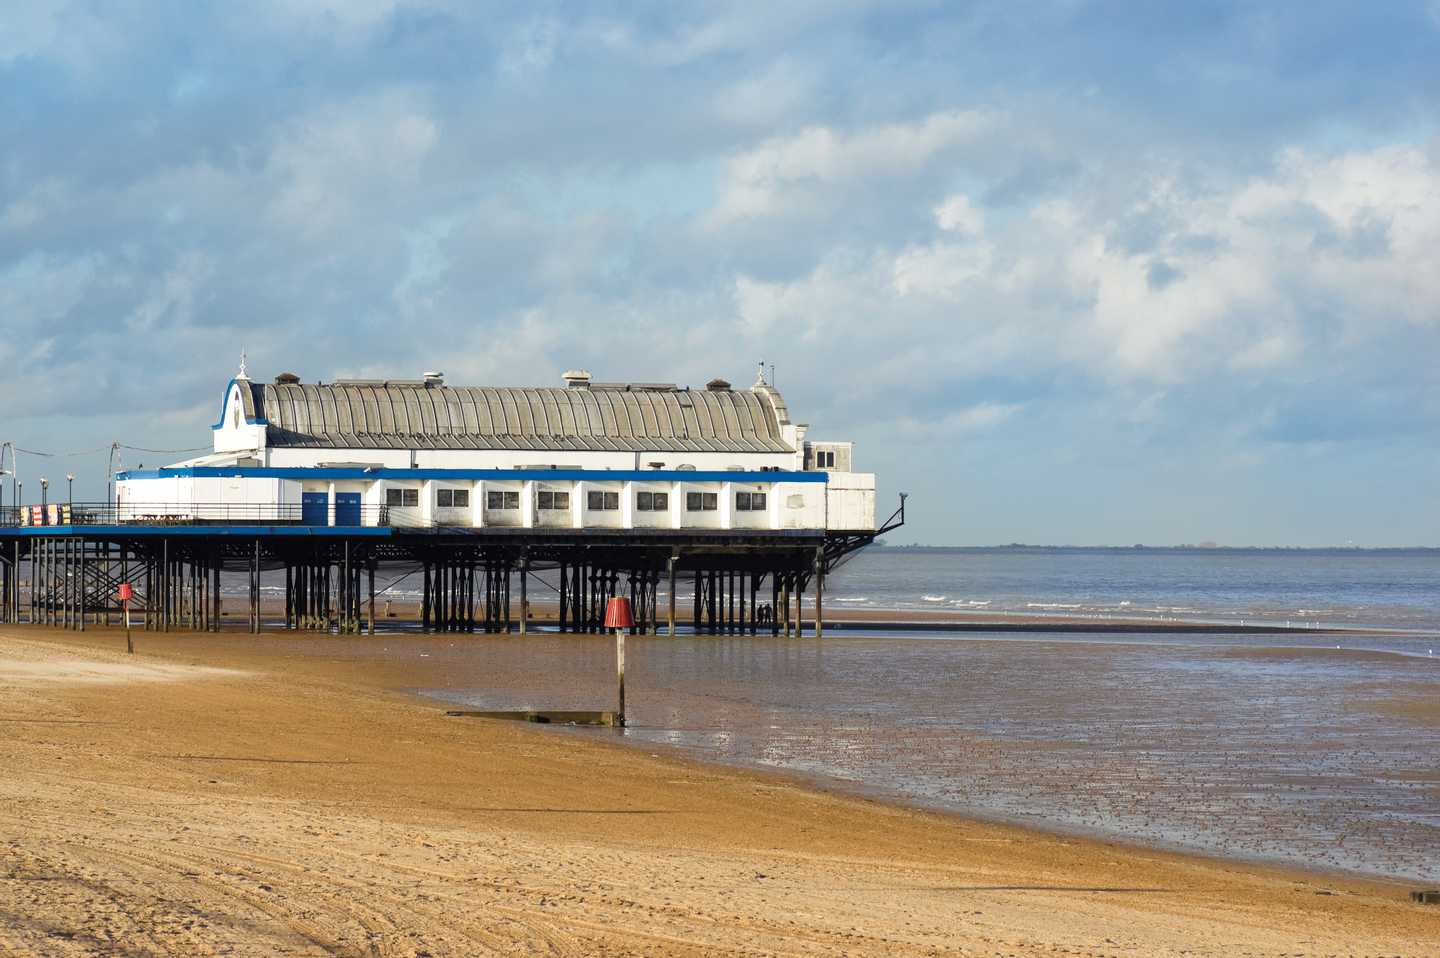 The pier at Cleethorpes, Lincolnshire